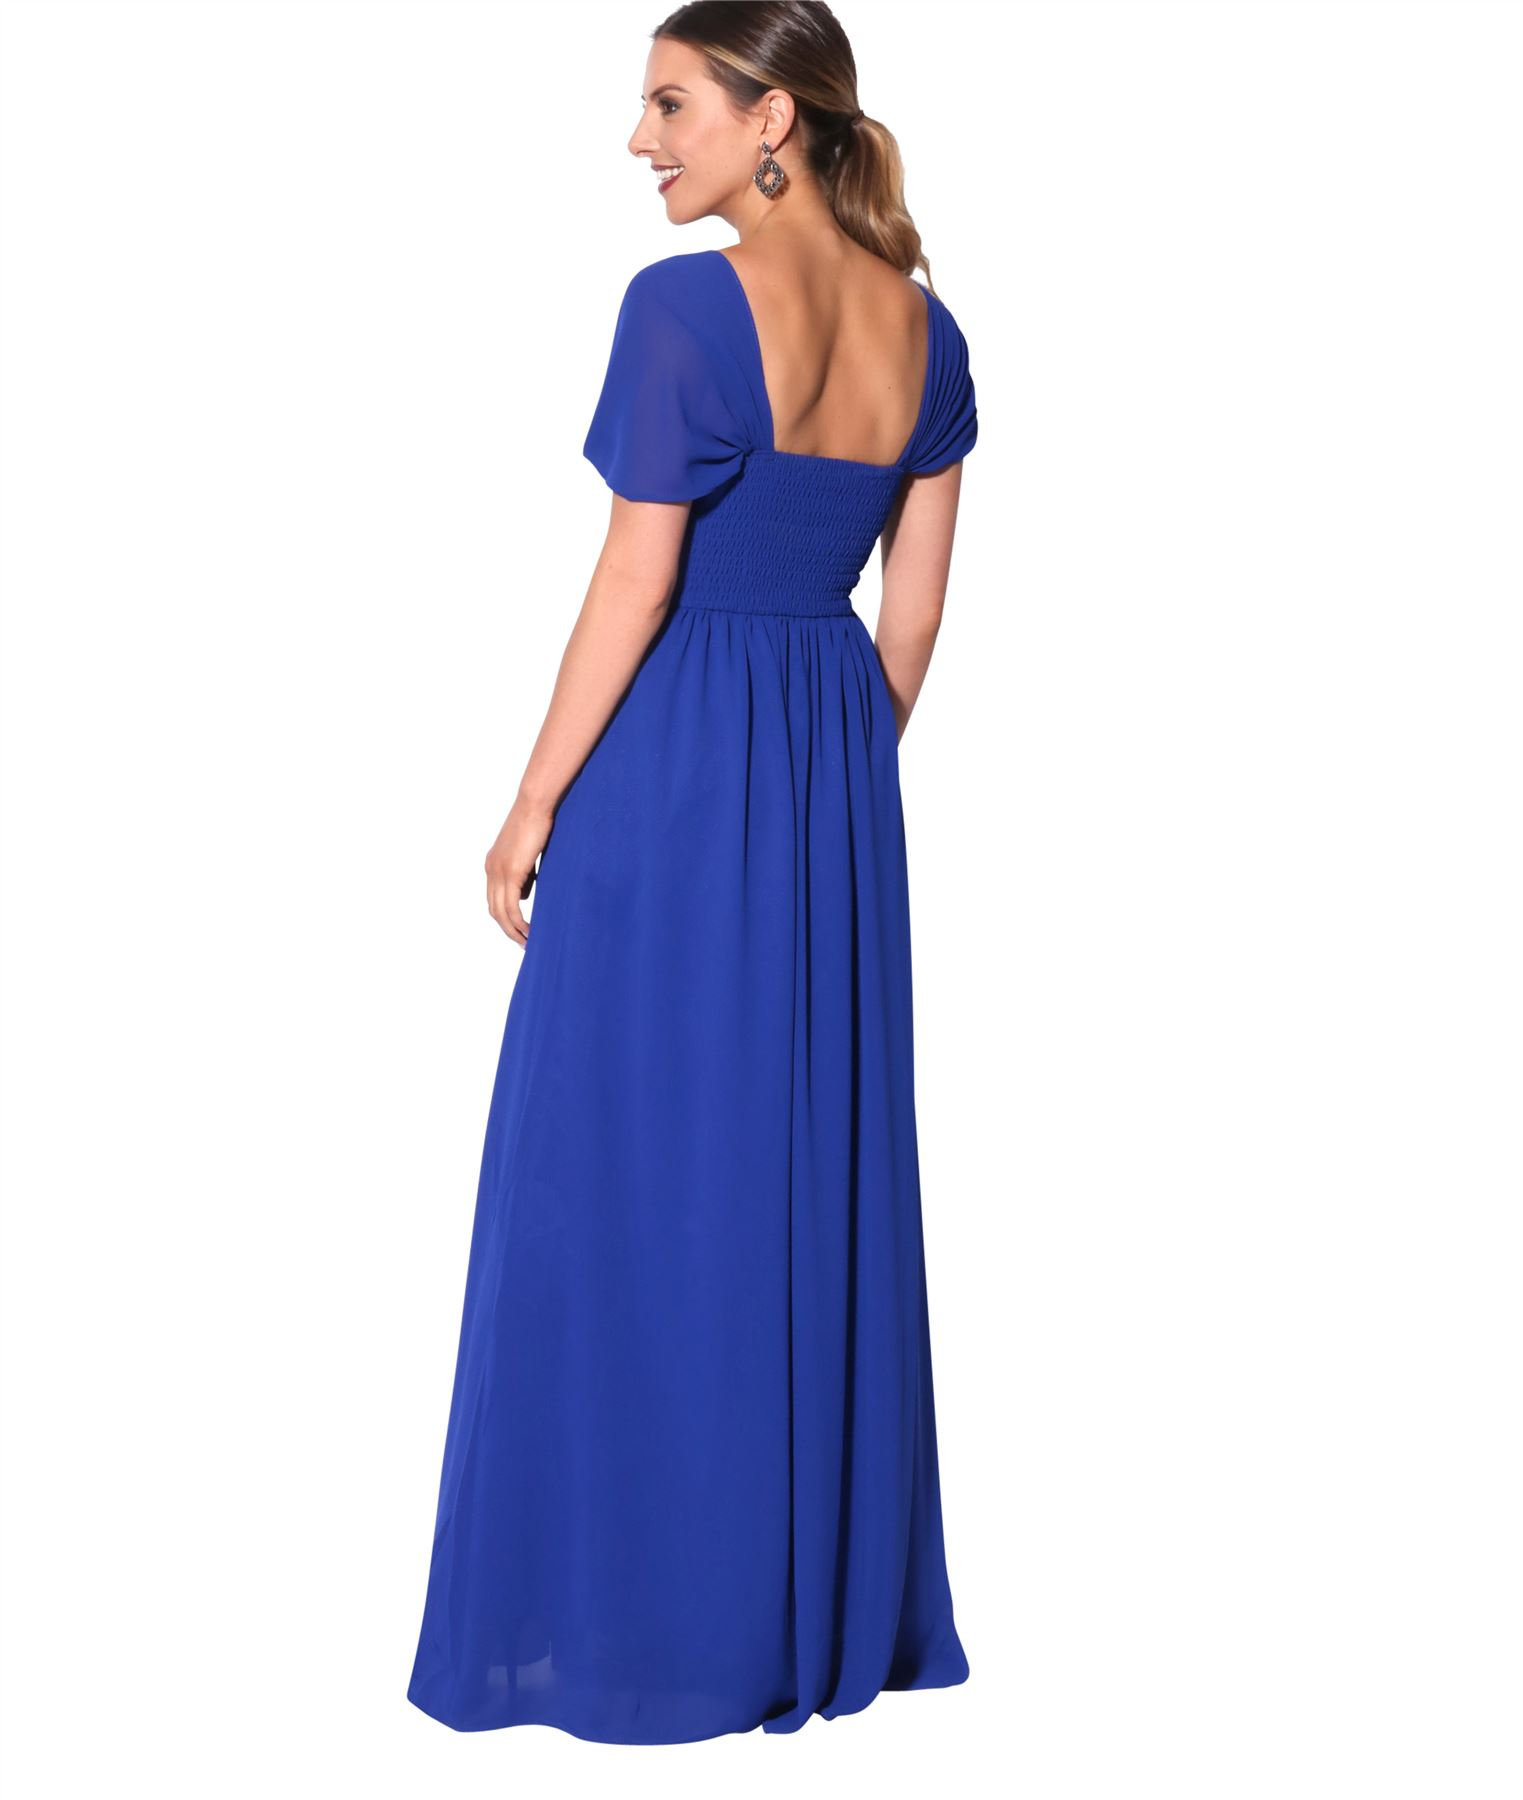 Womens-Formal-Evening-Wedding-Maxi-Prom-Dress-Long-On-Off-Shoulder-Ball-Gown thumbnail 50